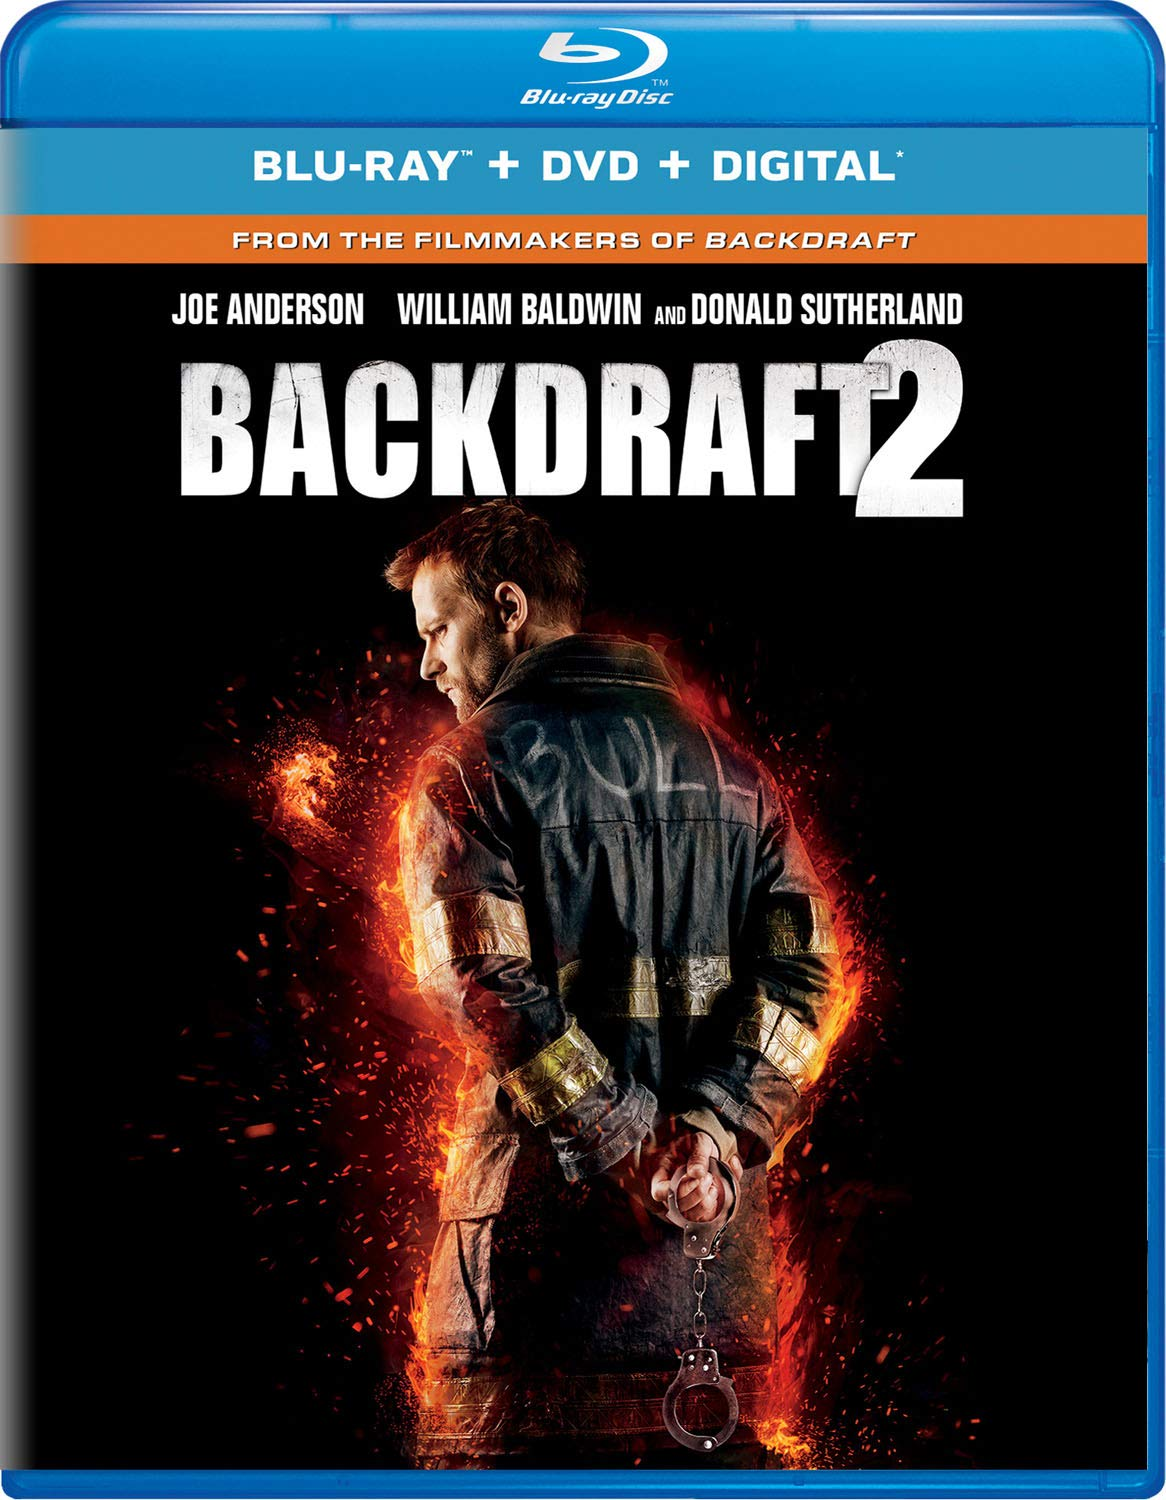 Back draft 2  My   ford f-150 truck sound effects library   was used for this featured film.